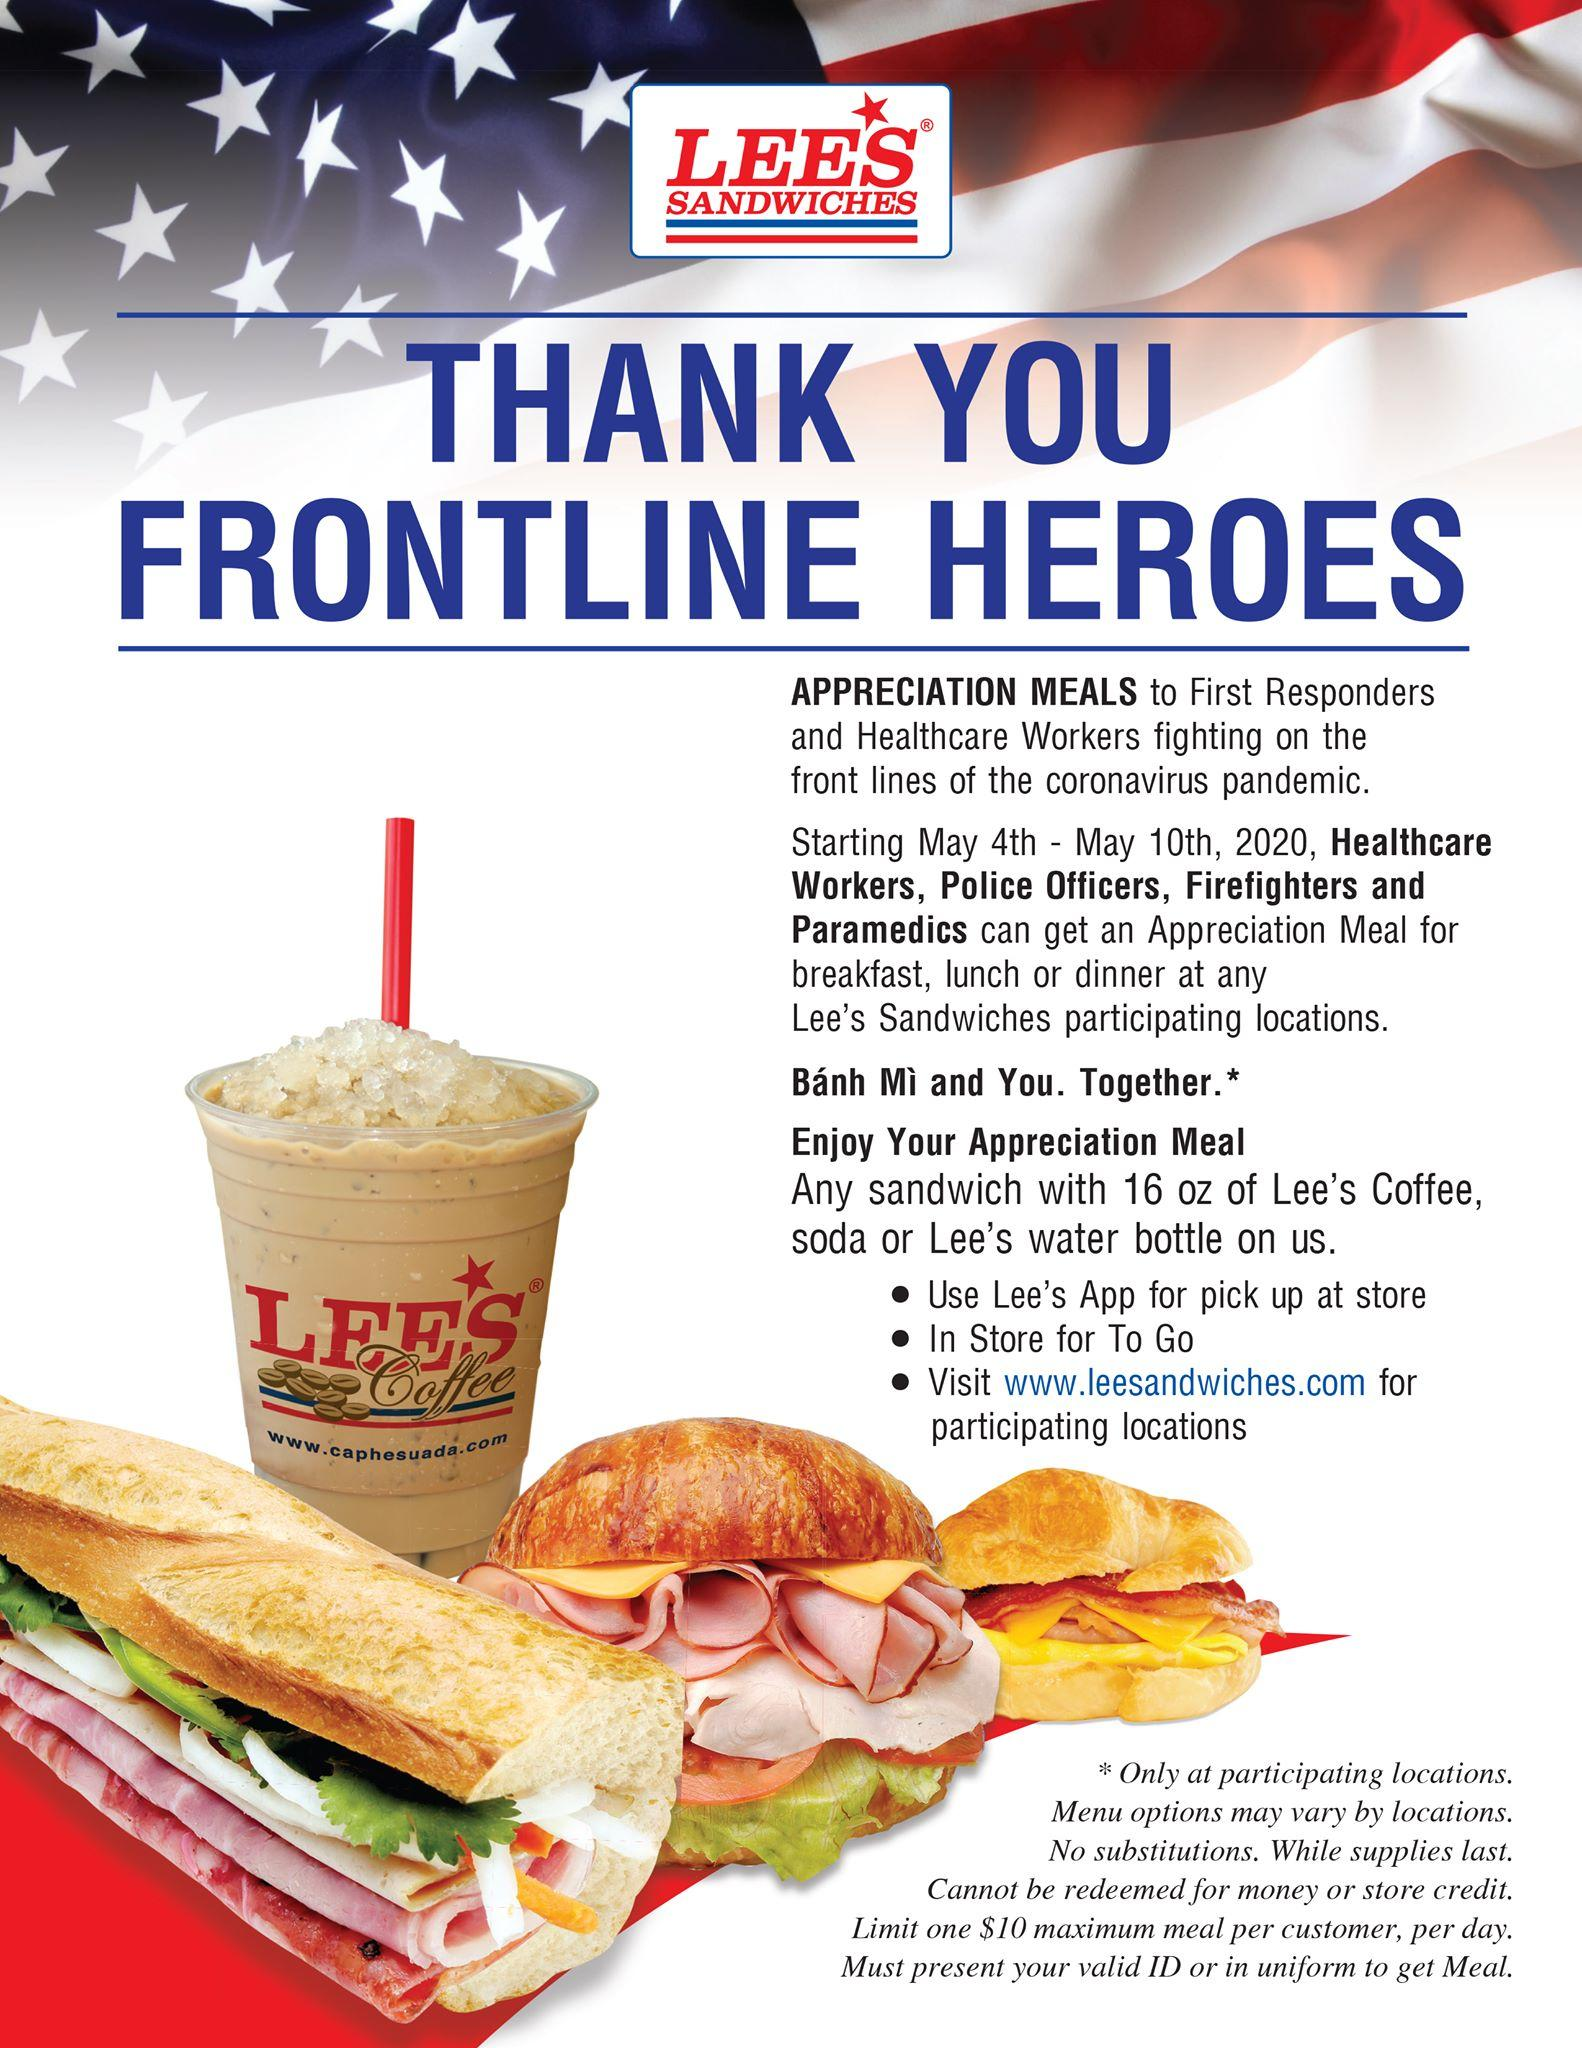 FREE Appreciation Meal at Lee's Sandwiches for First Responders and Healthcare Workers